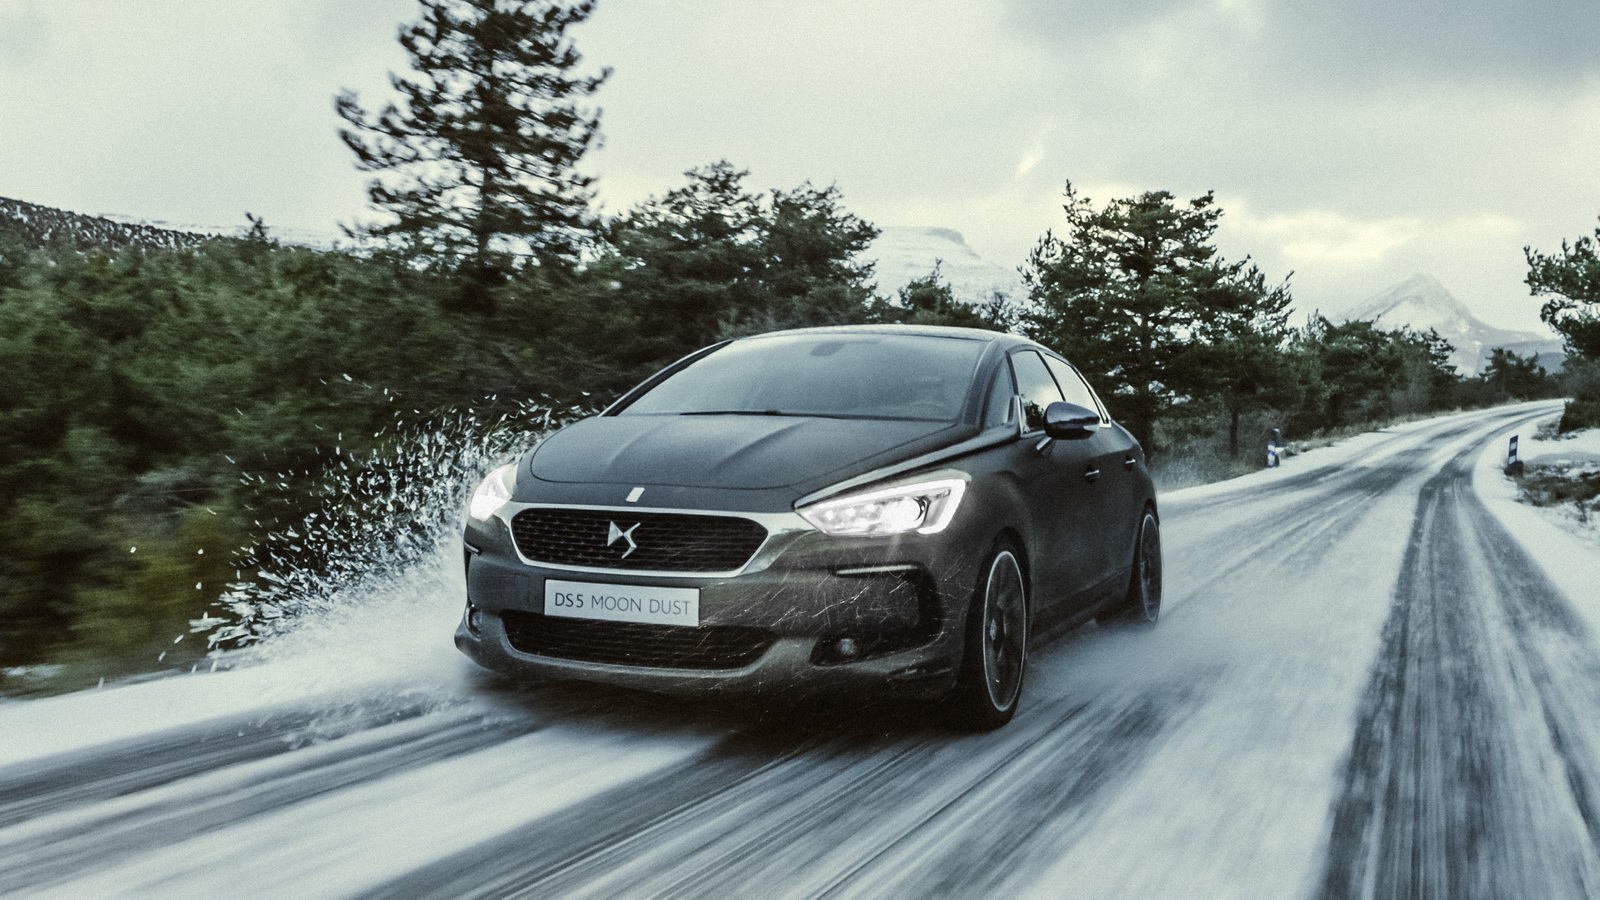 DS 5 Moon Dust - DS Automobiles